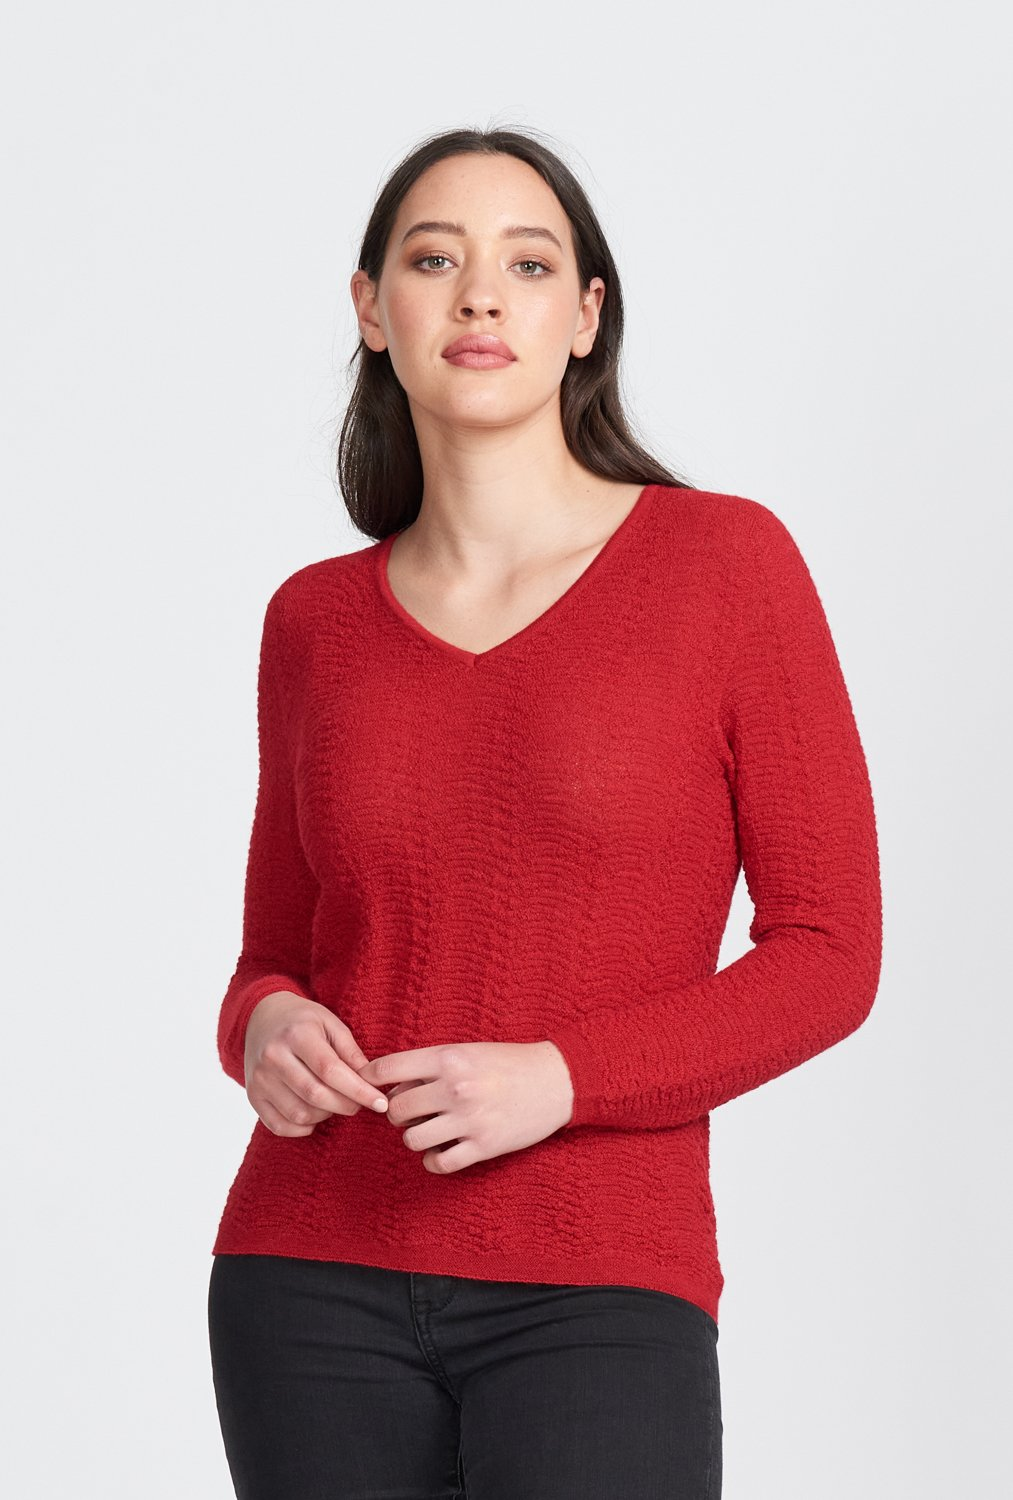 ROSA V NECK JUMPER - Woolshed Gallery